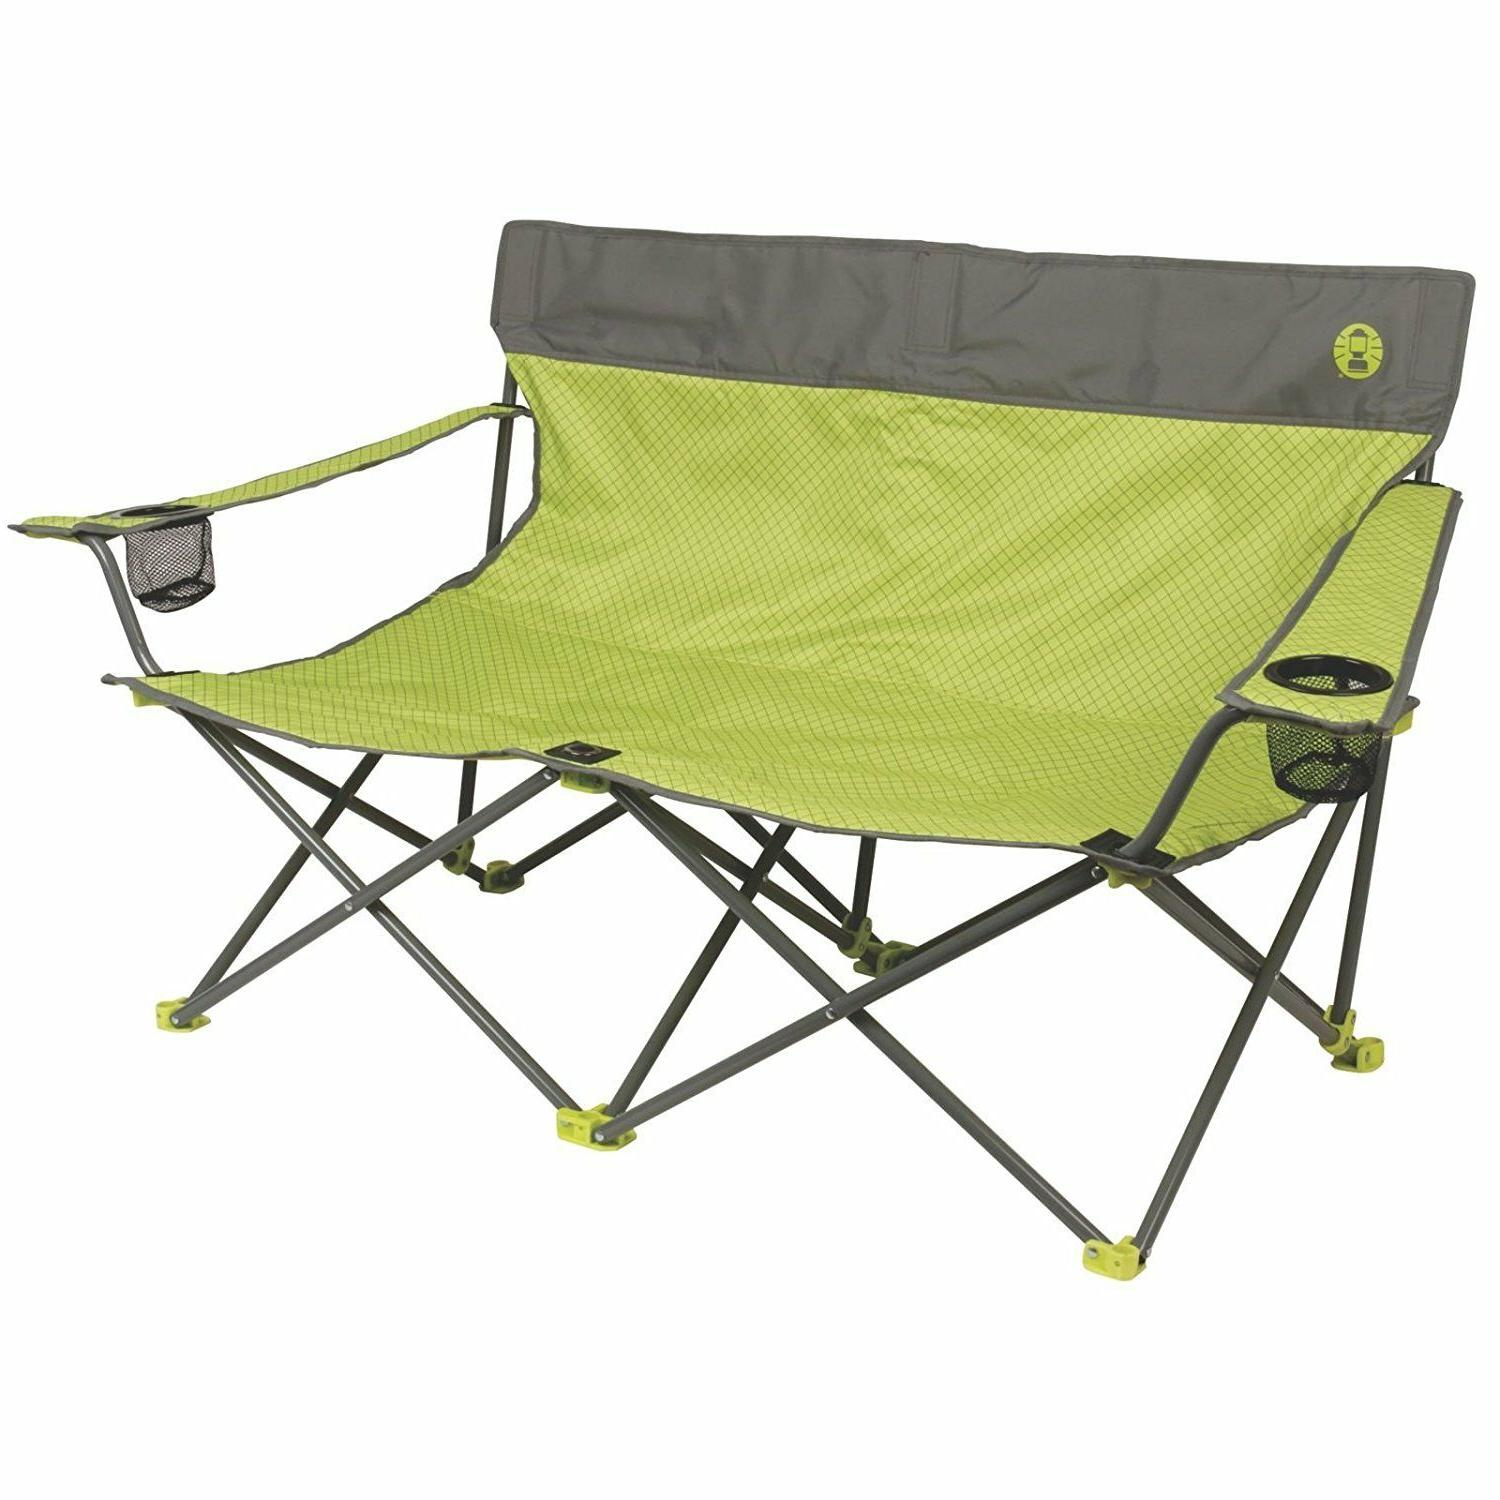 double chair for 2 person beach camping